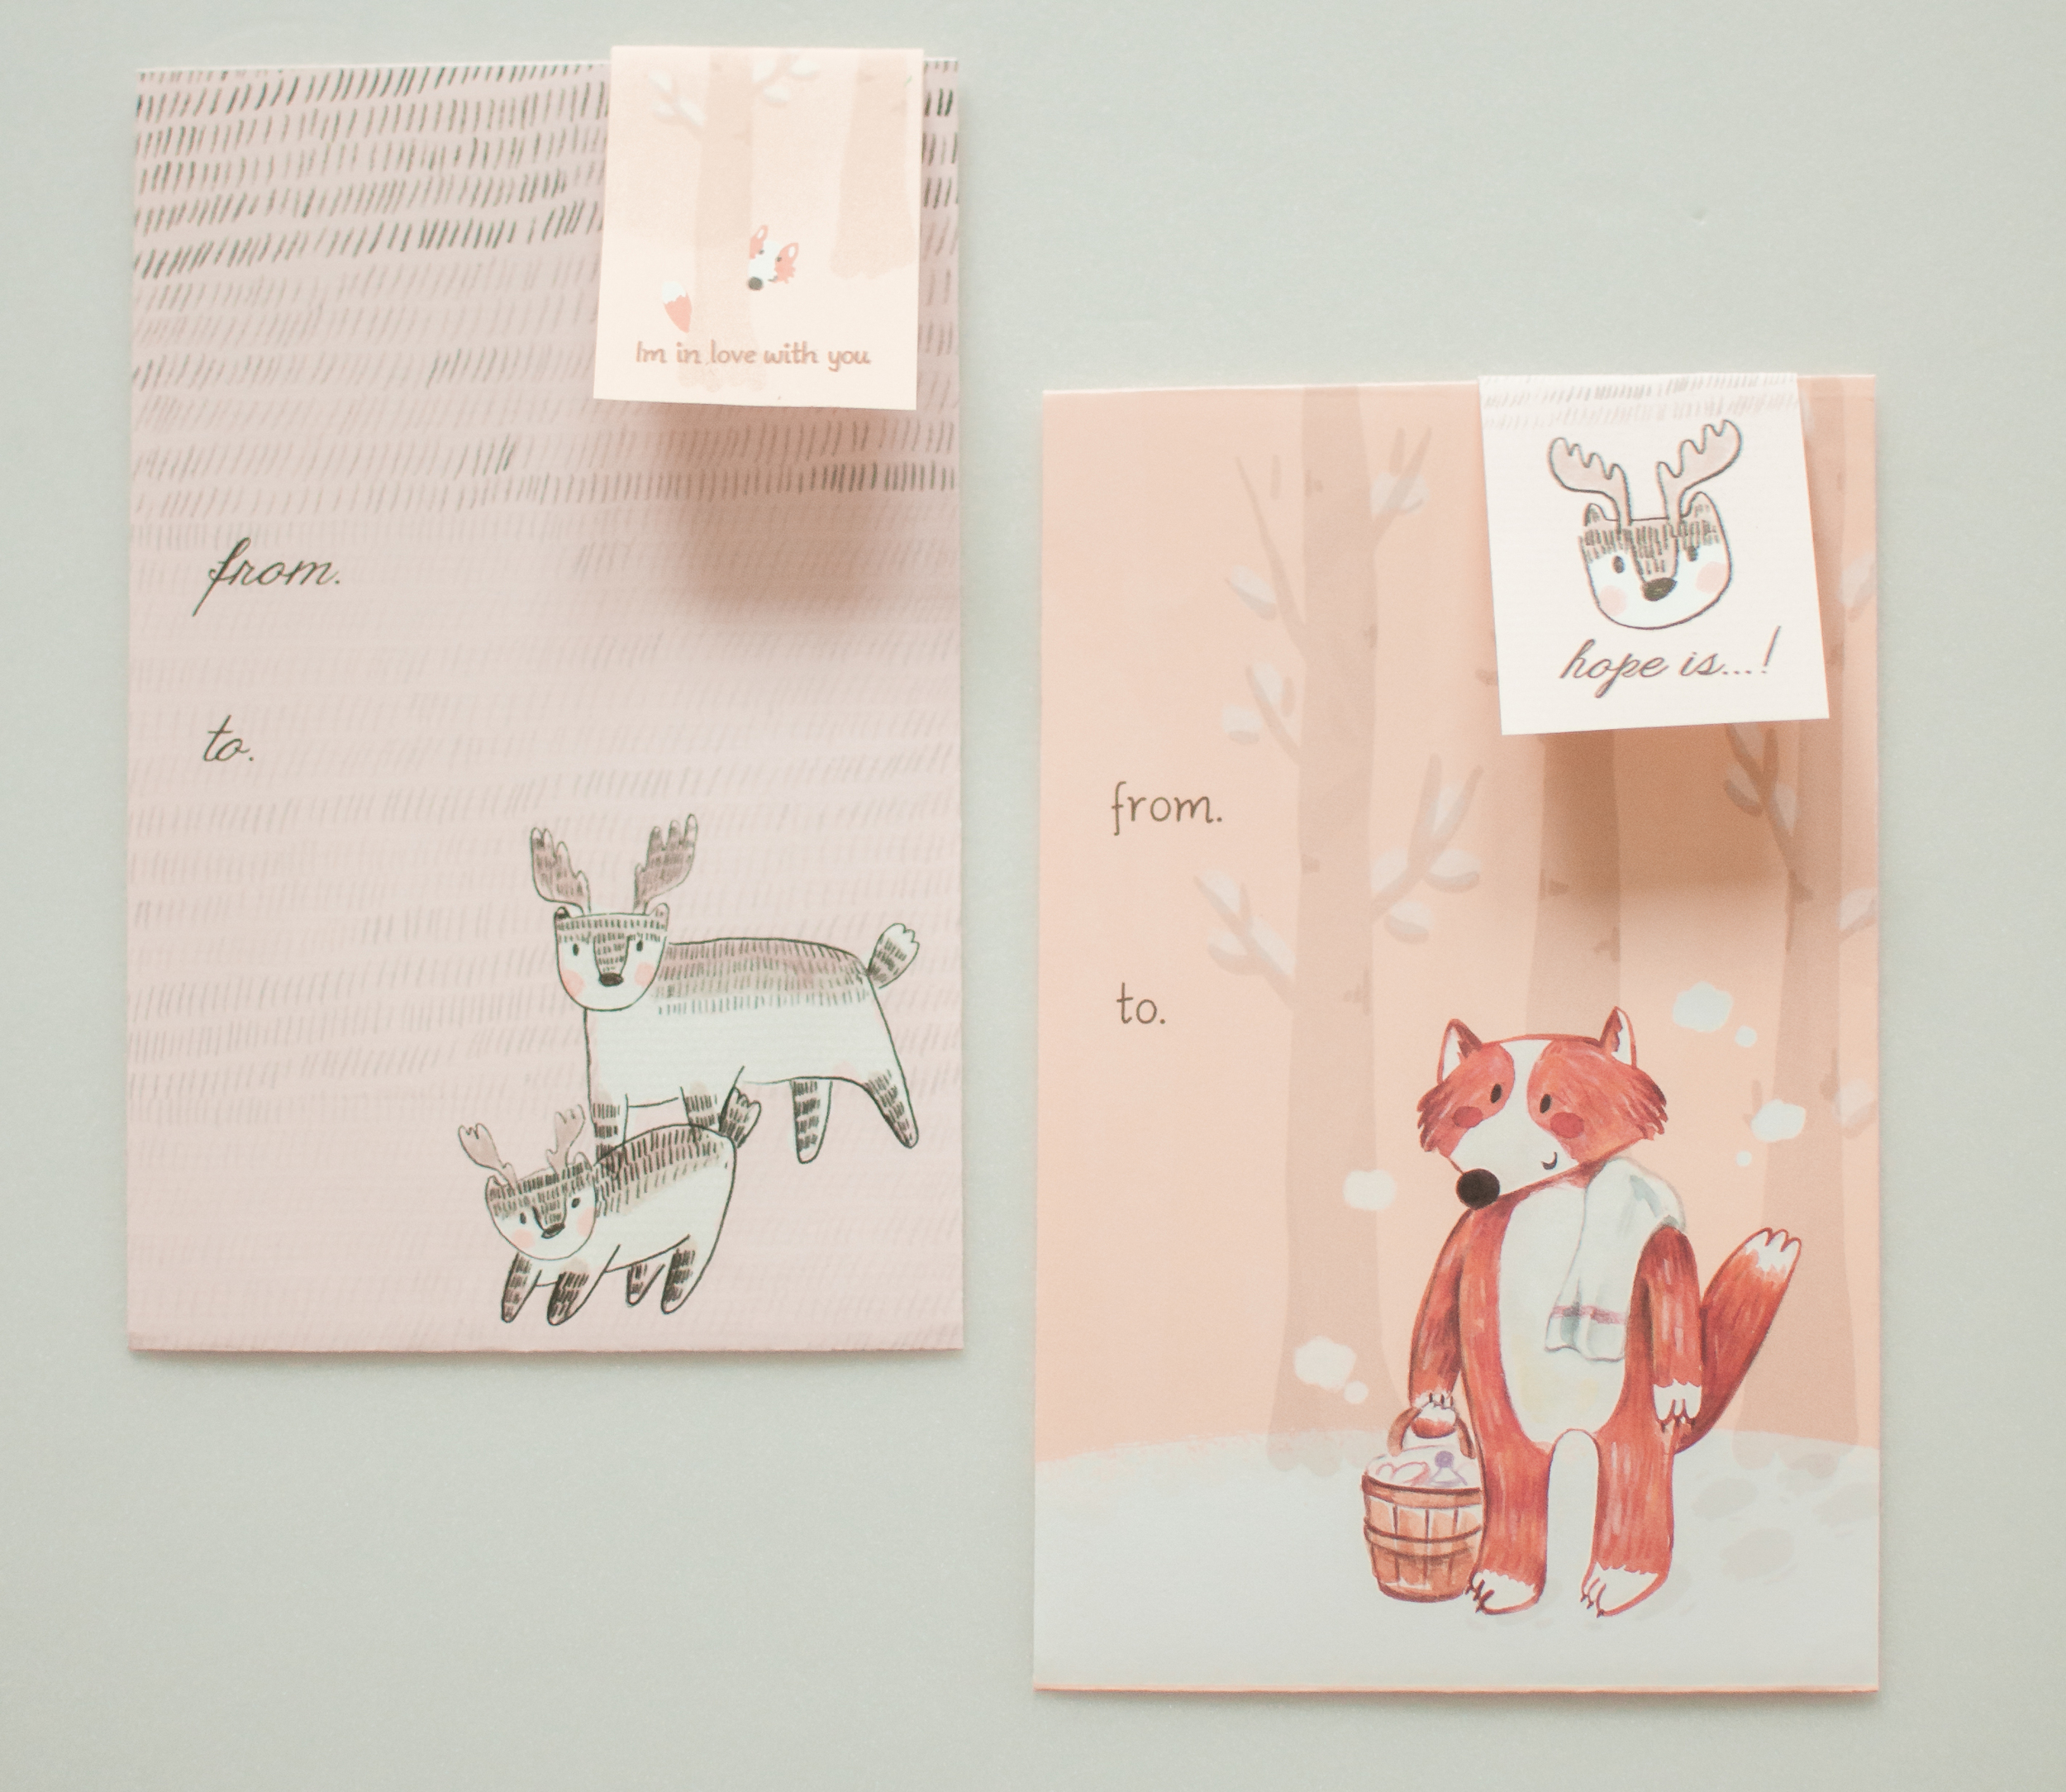 CityGirlSearchingStationeryStoreSouthKorea (10 of 39).jpg